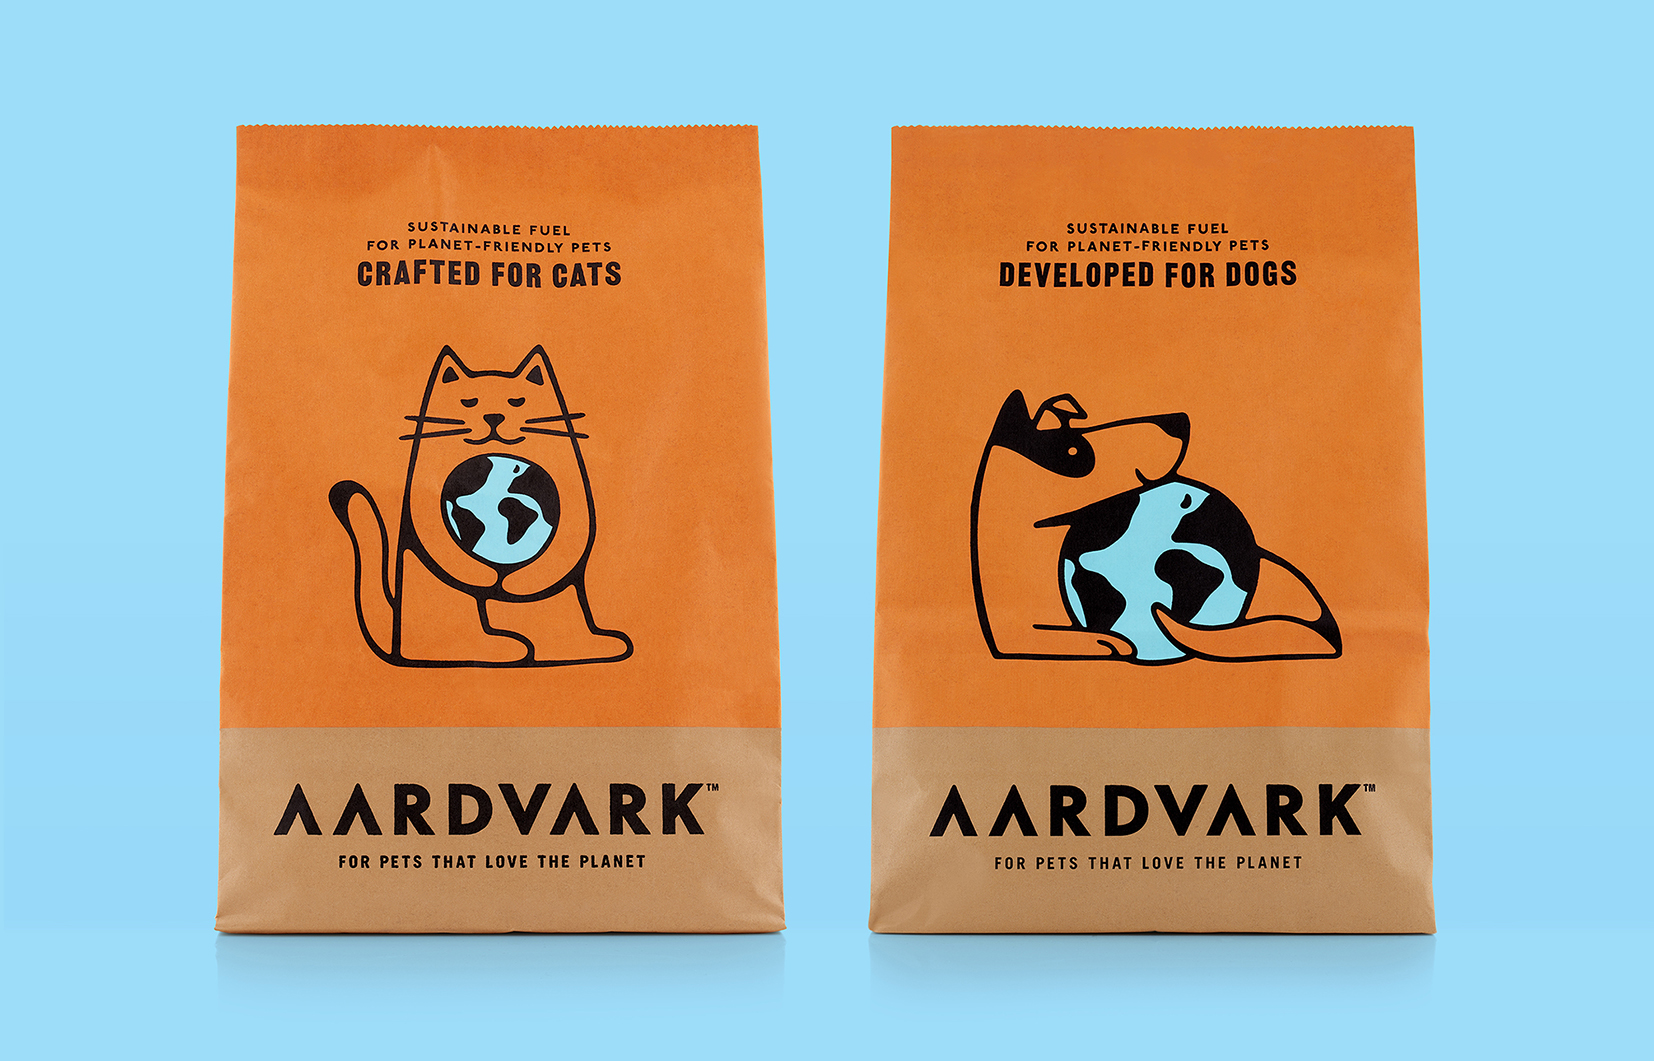 B&B Studio Creates Aardvark, a Sustainable Insect-based Pet Food Designed to Grow an Engaged Community of Pet and Planet Lovers